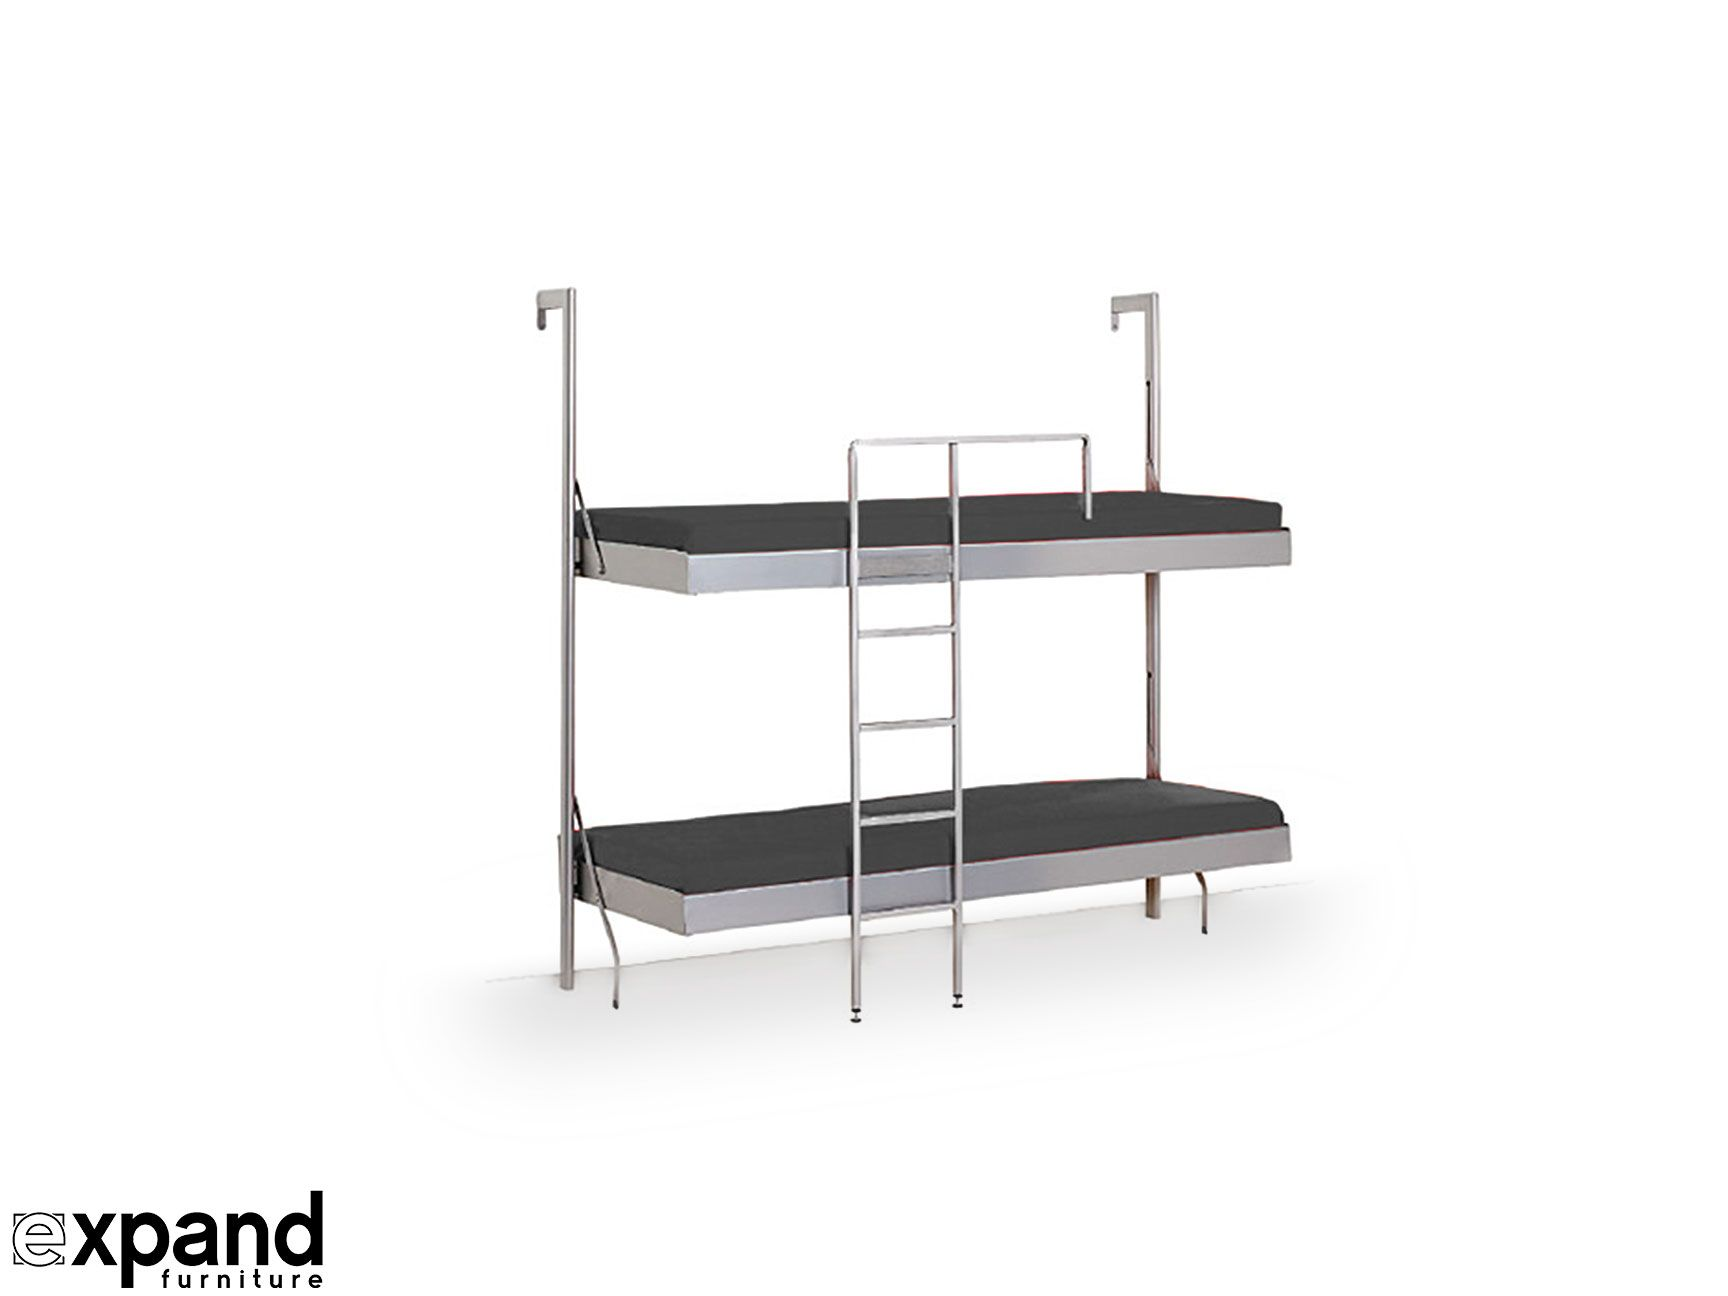 Compatto Murphy Bunk Bed From Italy Expand Furniture Murphy Bunk Beds Bunk Beds For Sale Expand Furniture